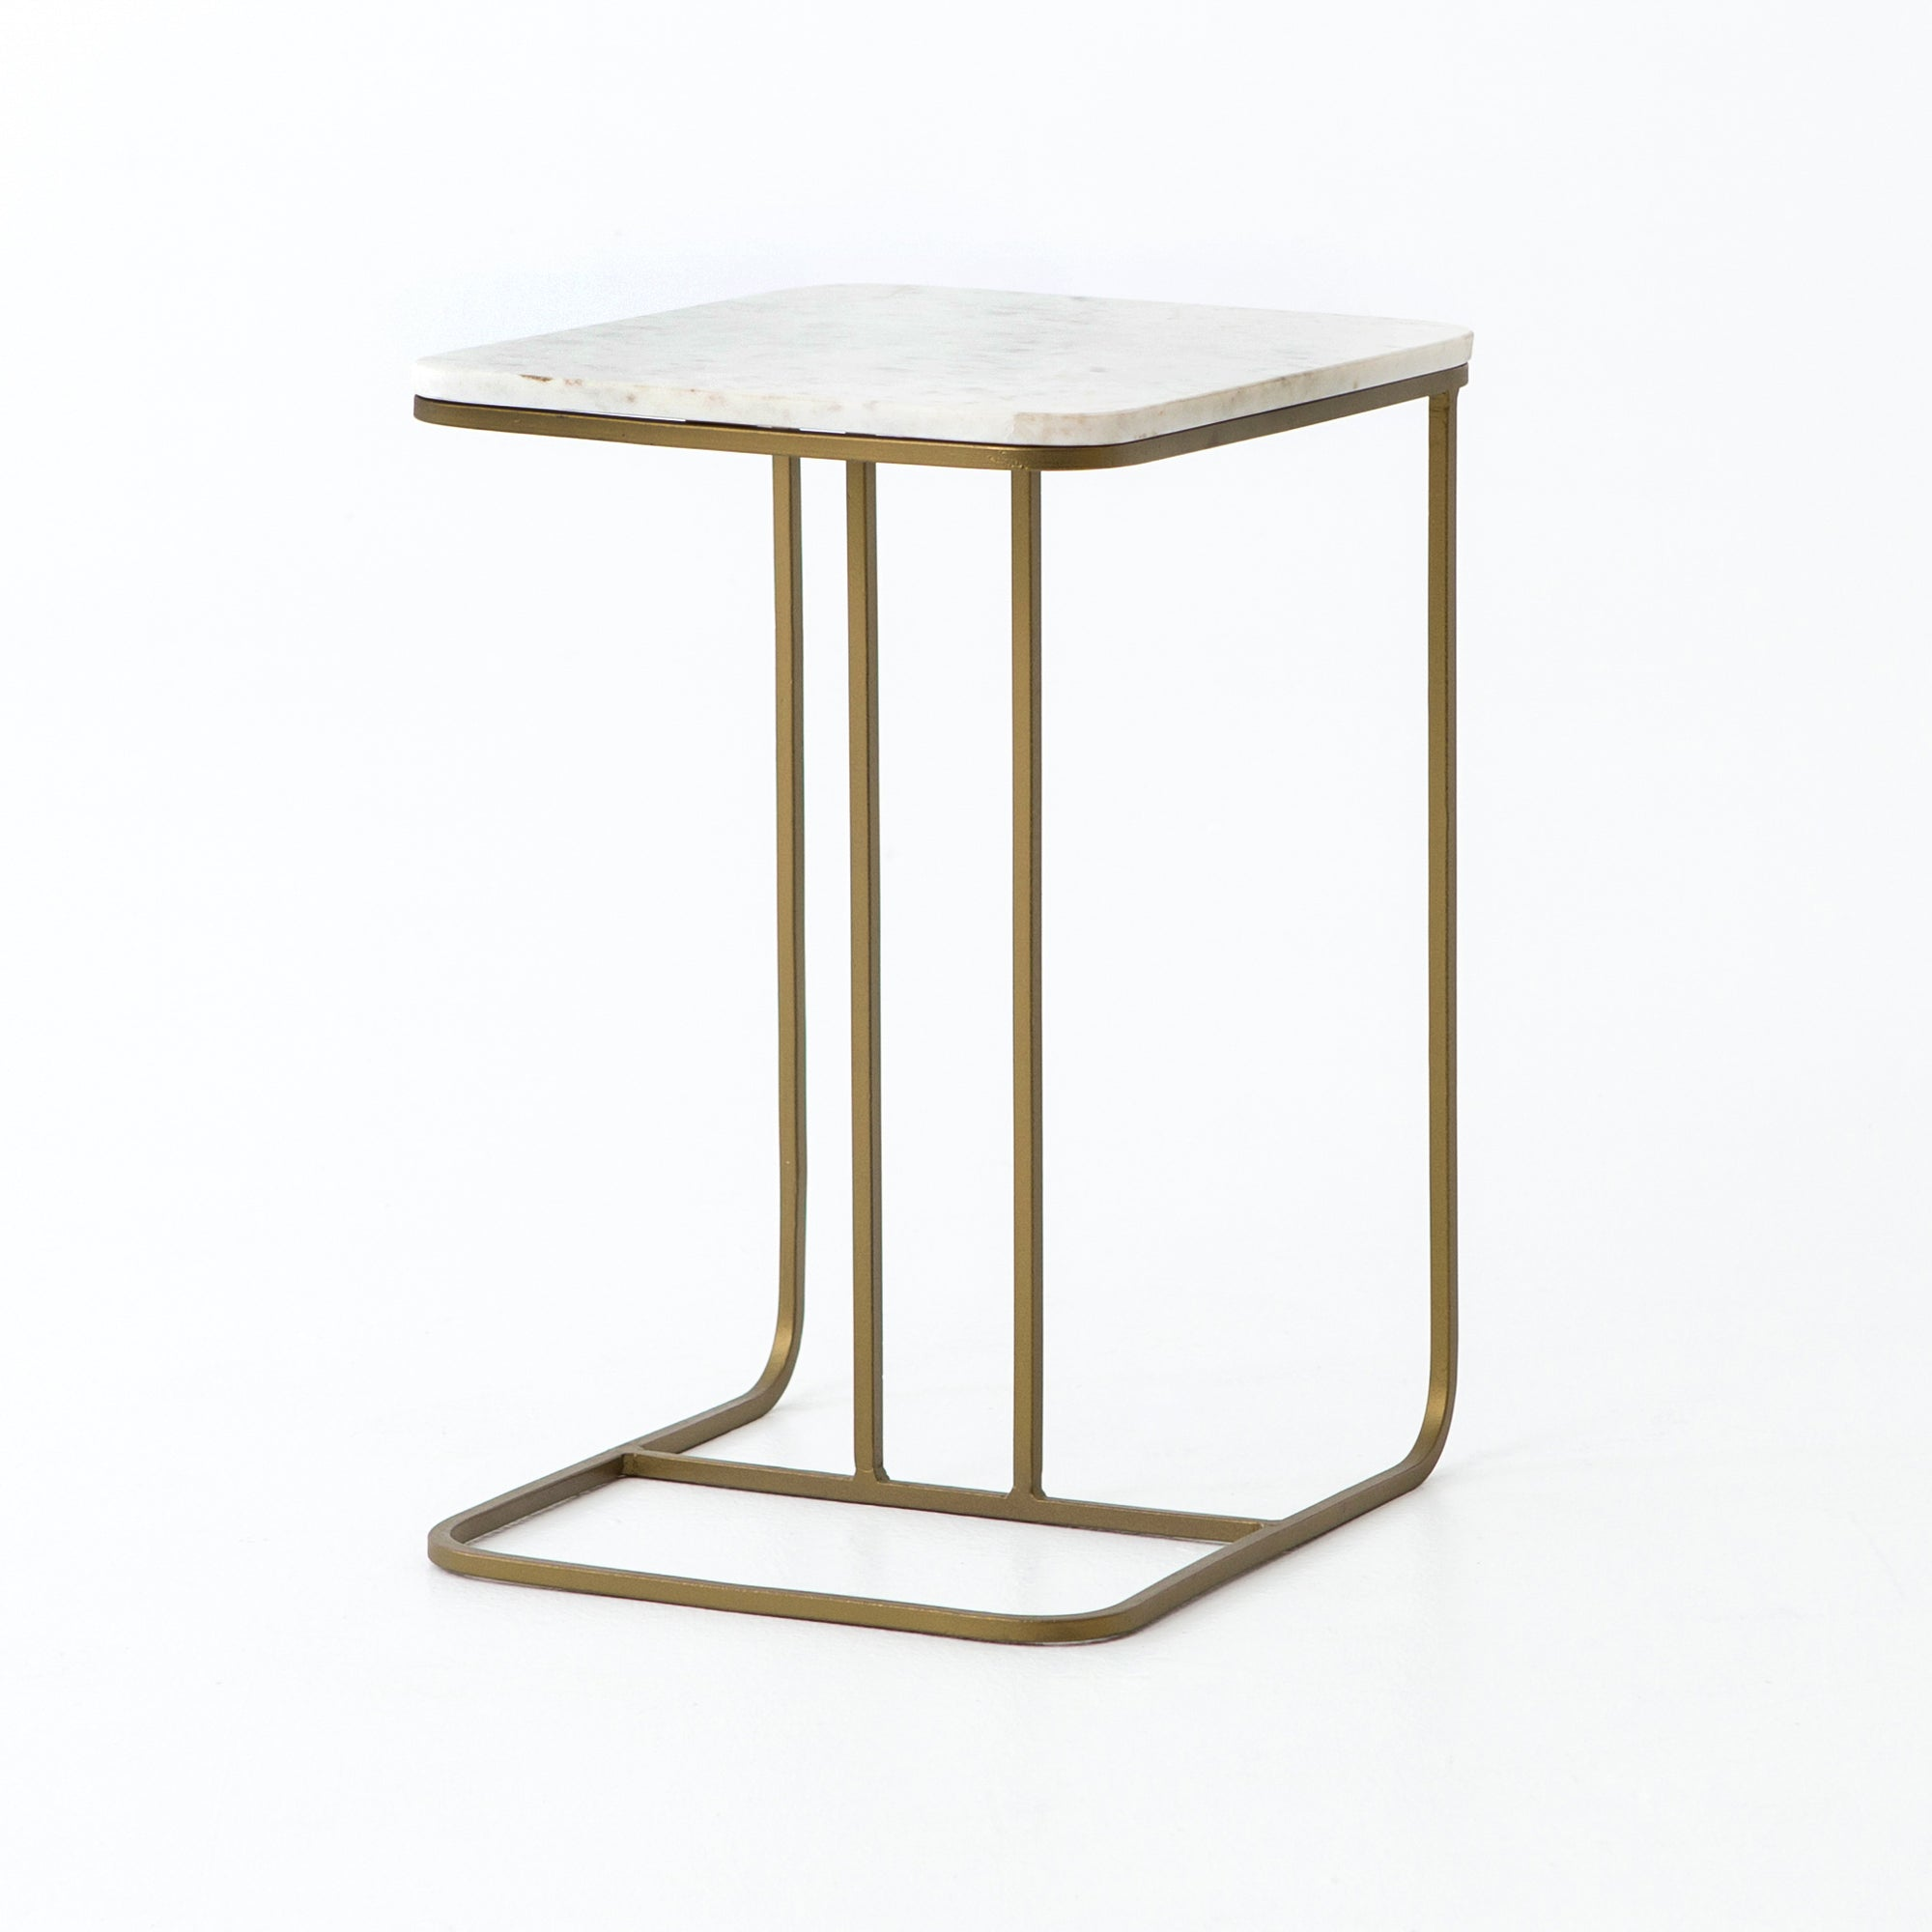 Adalley C Table - Polished White Marble